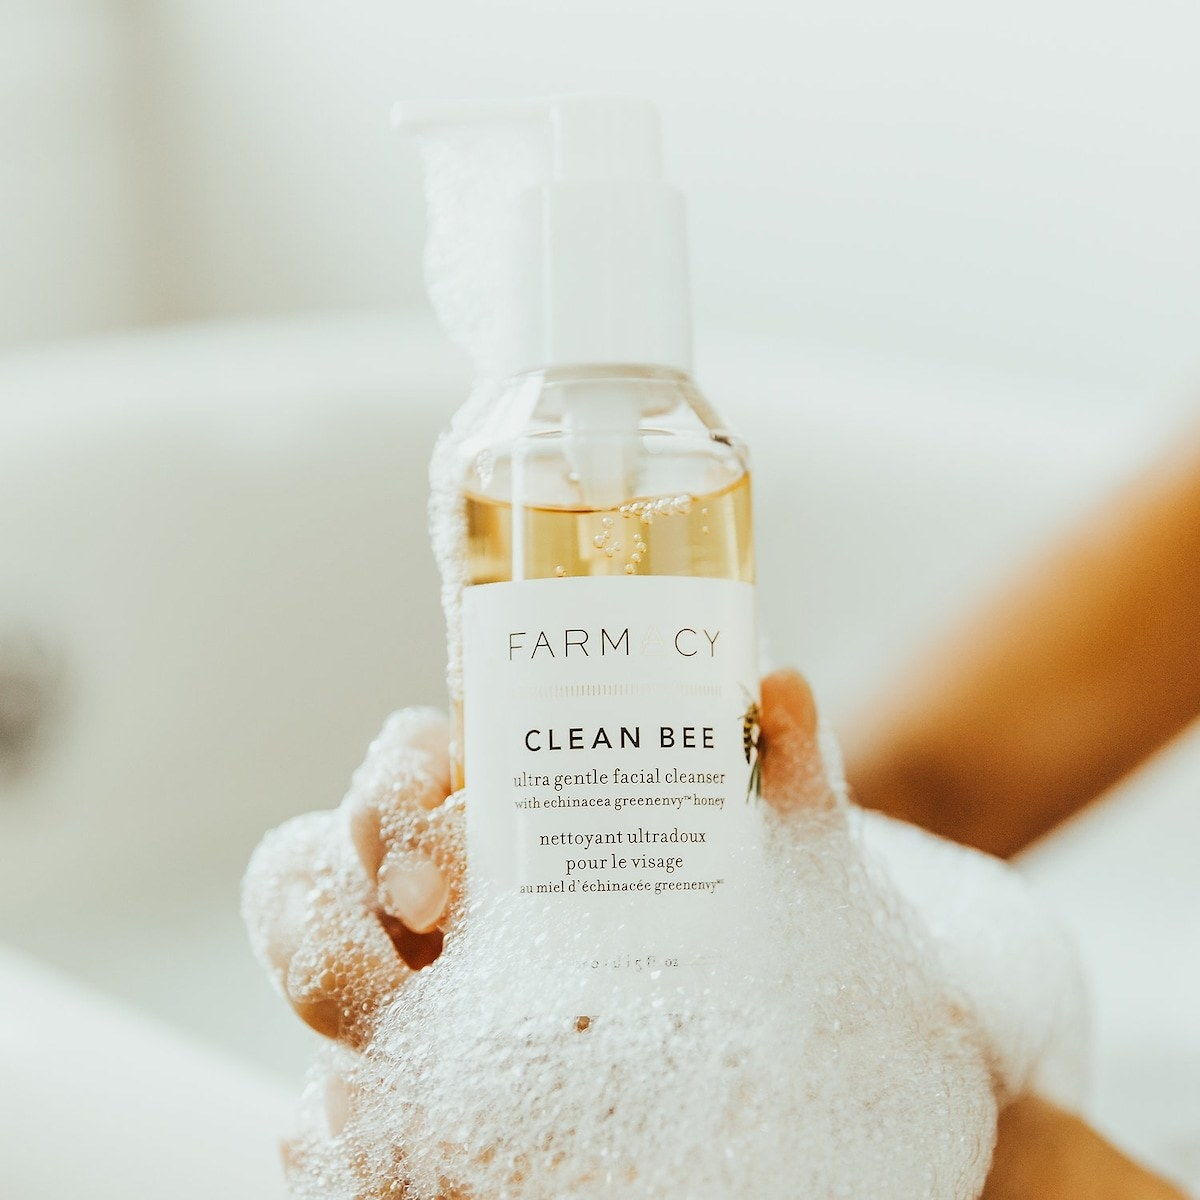 The bottle of cleanser, covered in suds, being held up by a Model in a bath tub